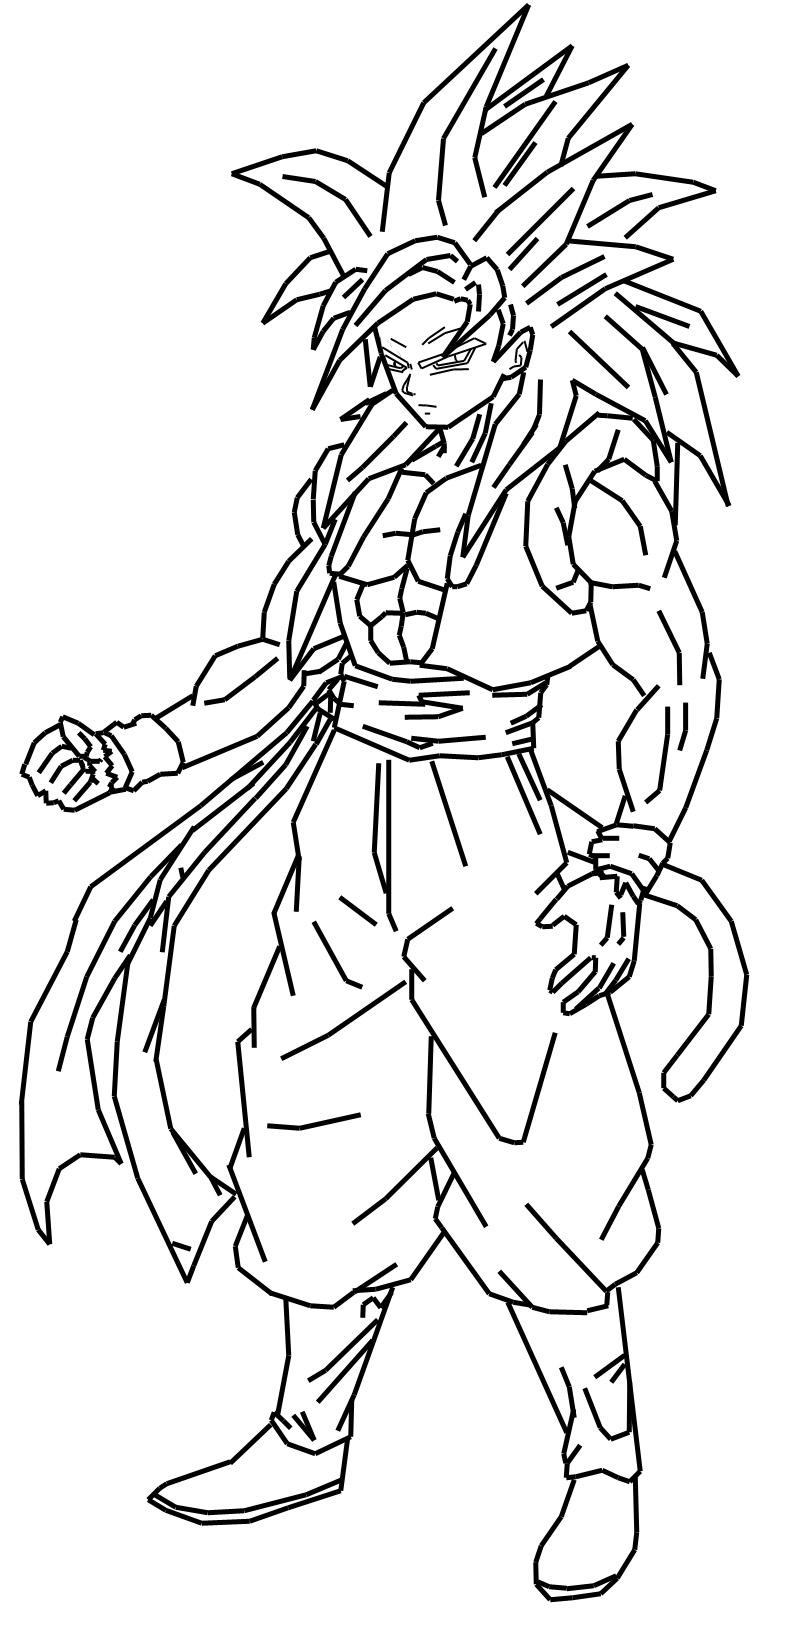 Similiar Gohan Ssj4 Coloring Pages Keywords Coloring Coloring Pages